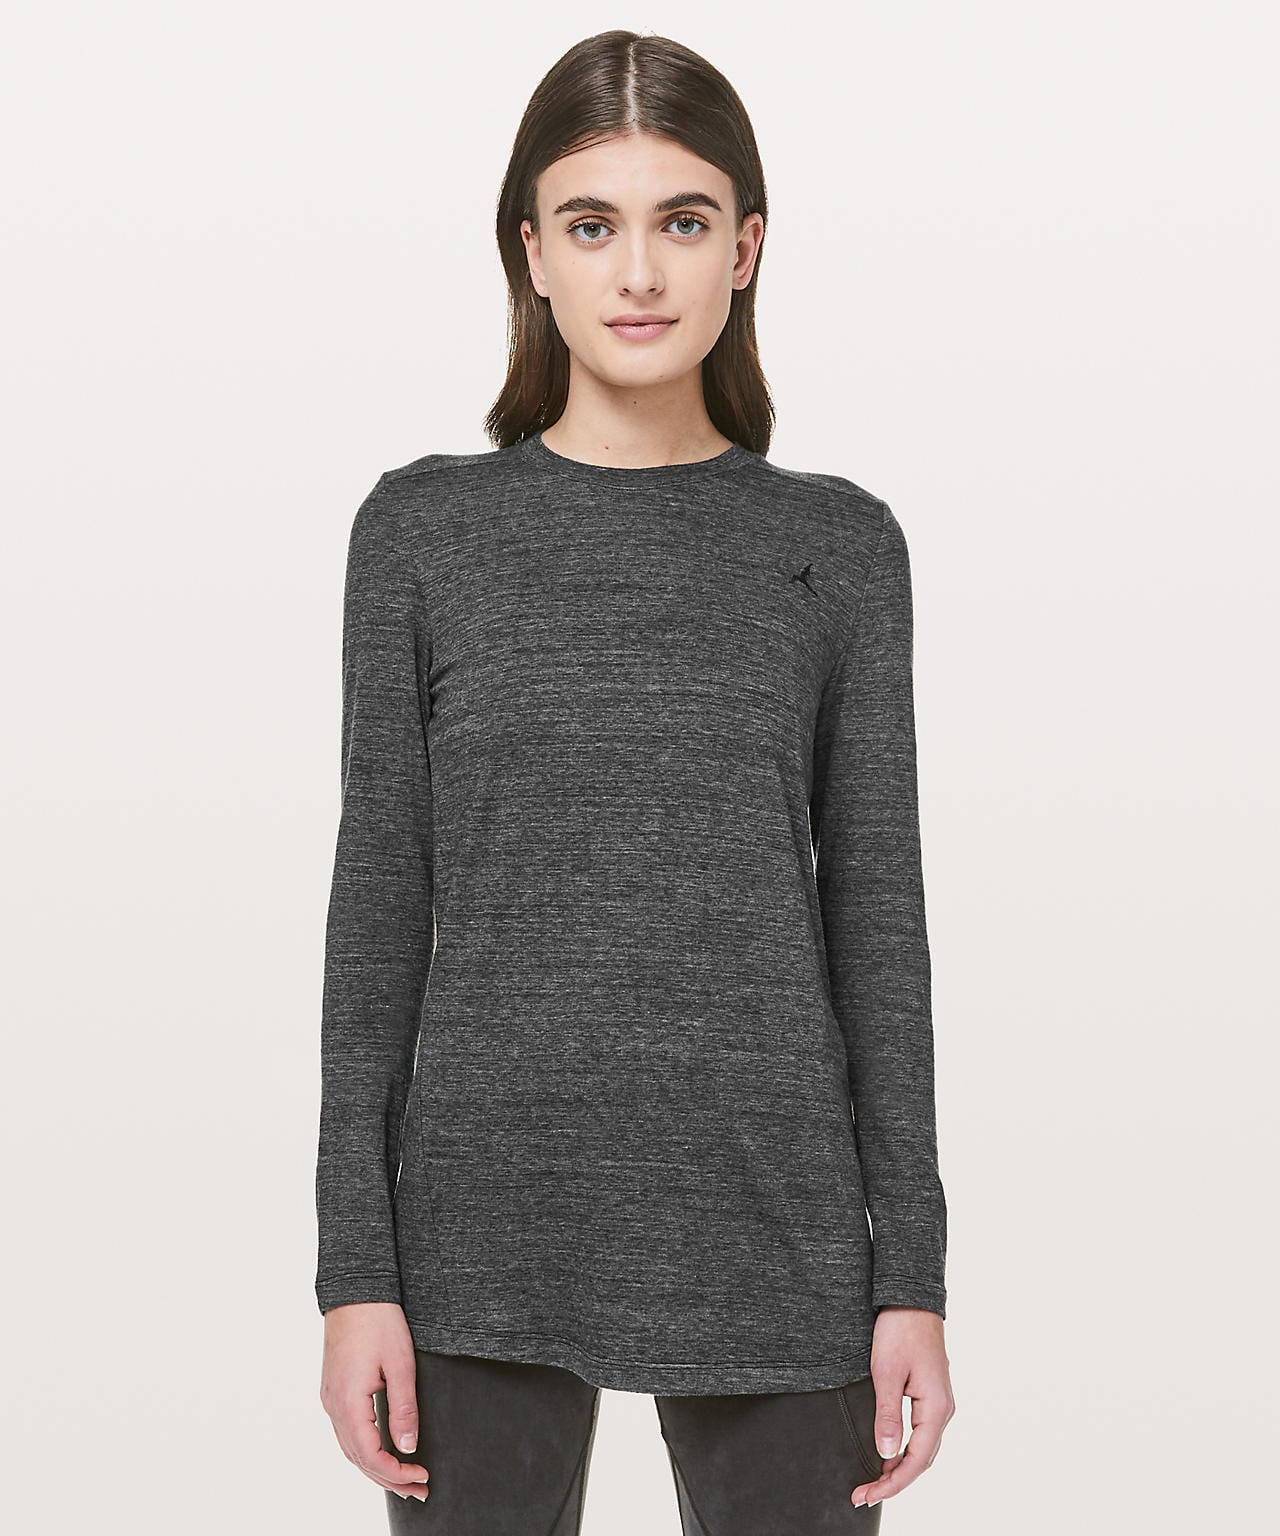 Heii Long Sleeve  lululemon lab